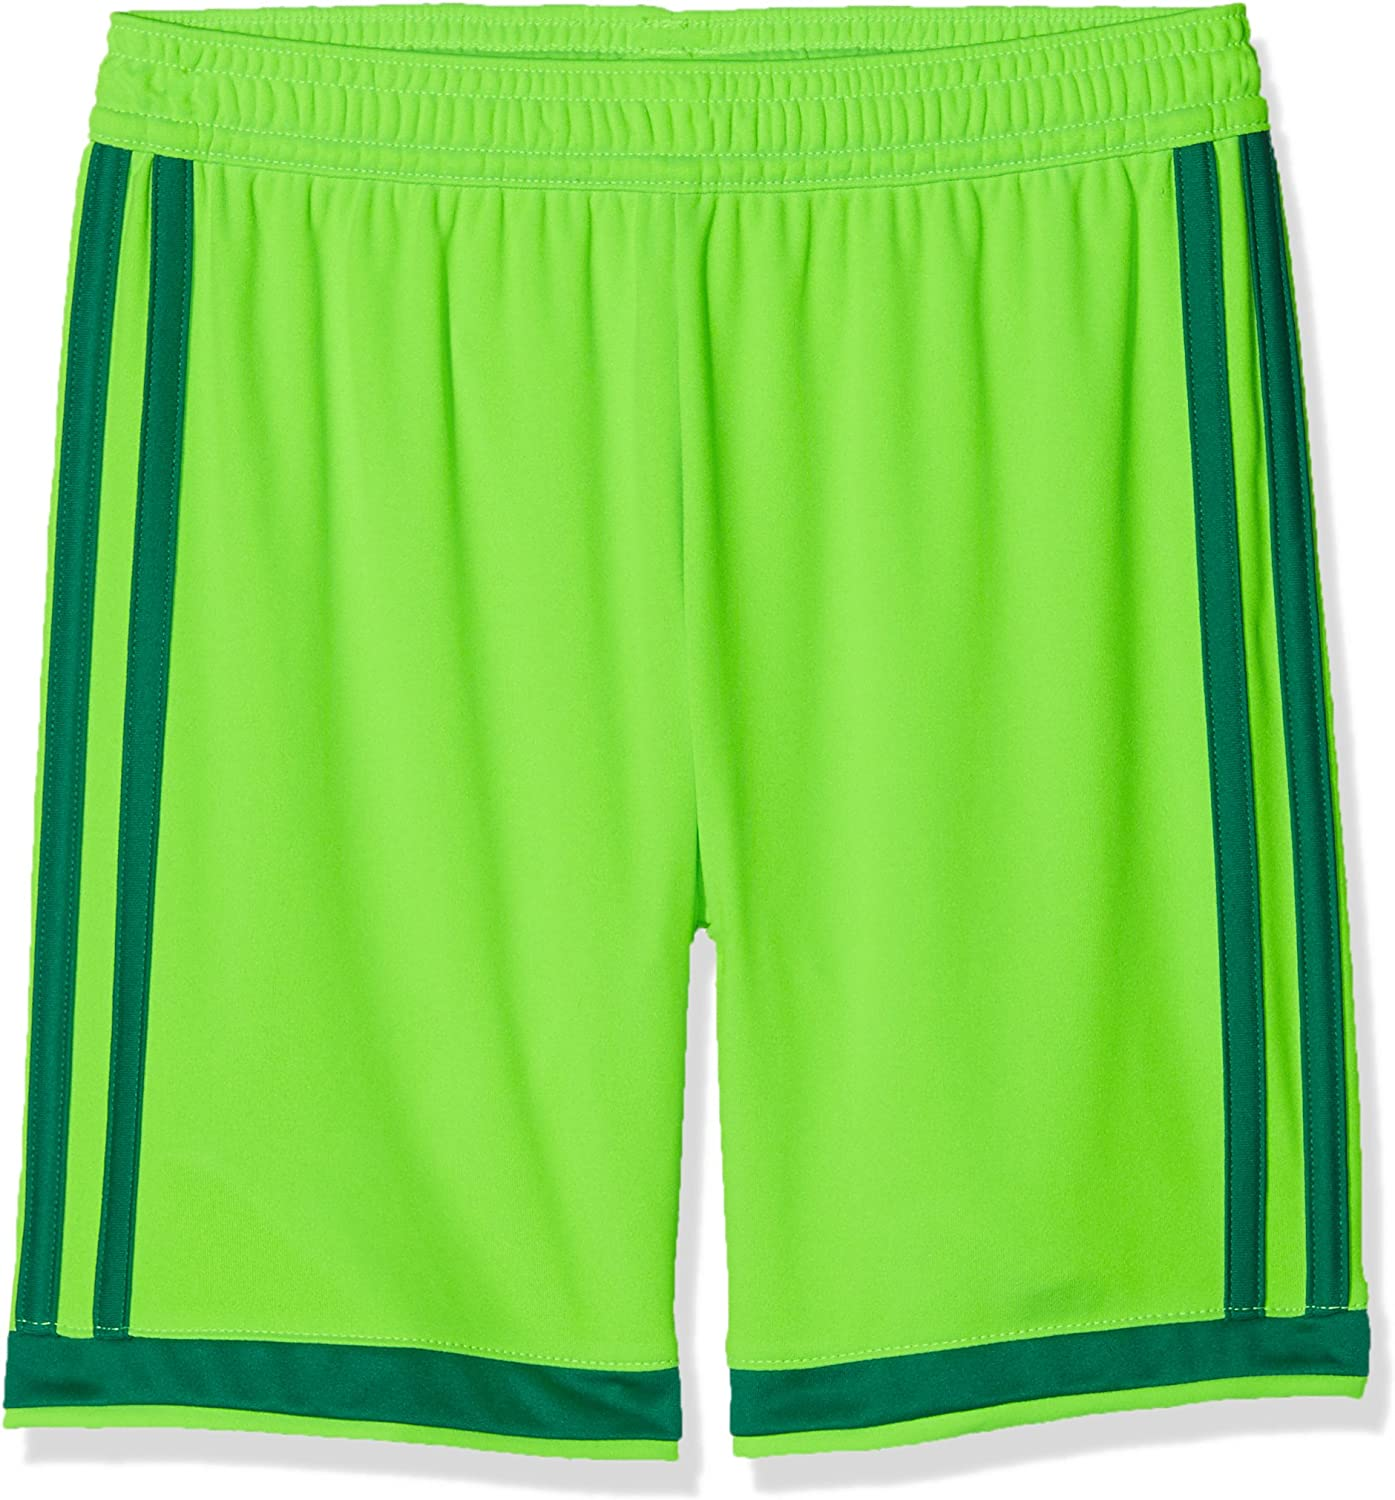 (164 (EU), solar green Bold green) - Adidas Men's Regista 18 Sho Team Pants, Men, REGISTA 18 SHO Teamhose, black